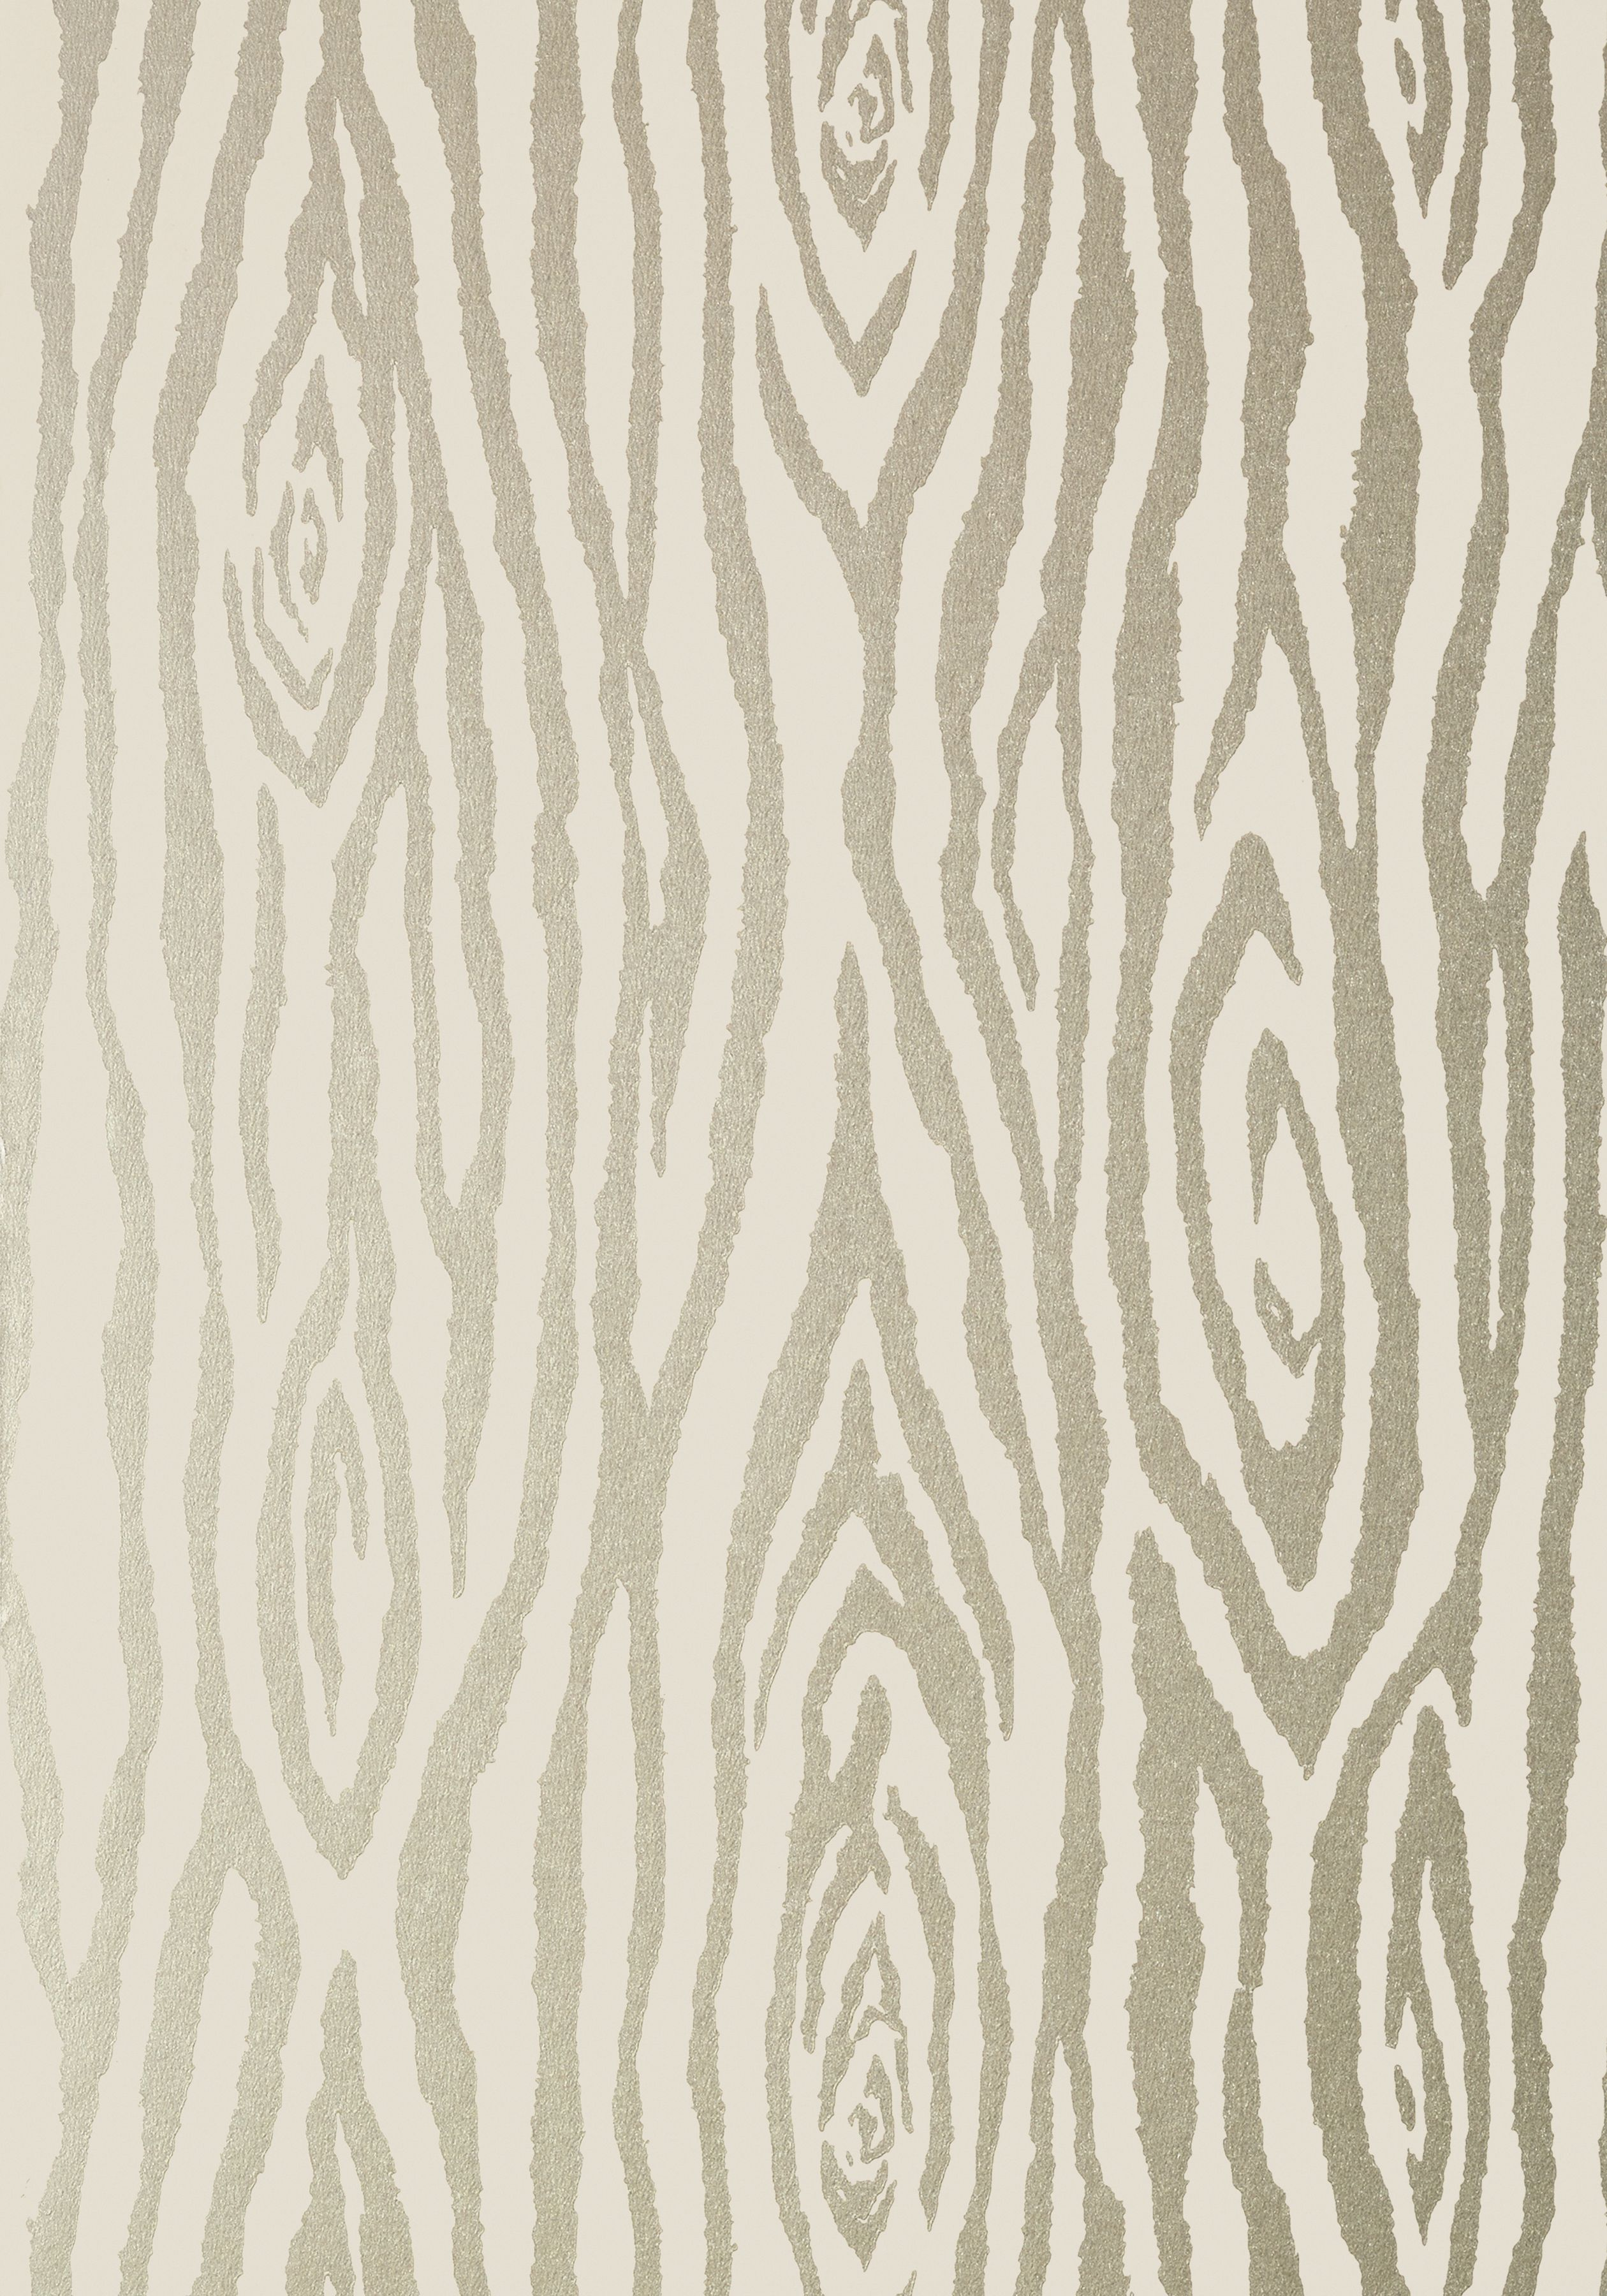 SURREY WOODS, Metallic Champagne, AT6014, Collection